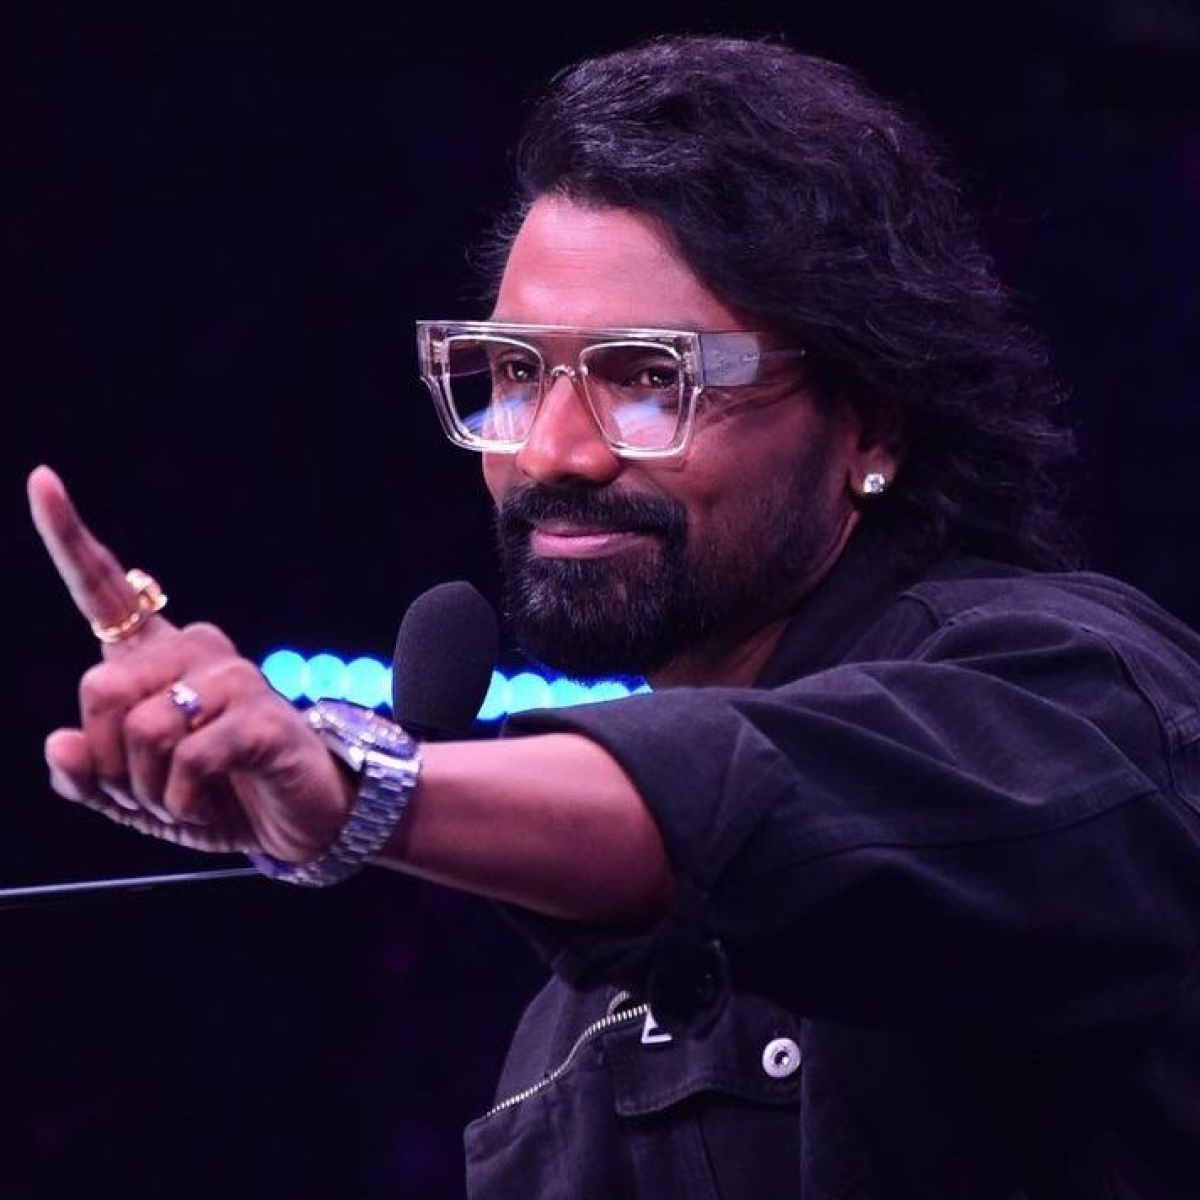 'People used to call me names': Remo D'Souza opens up on facing racism due to his skin colour